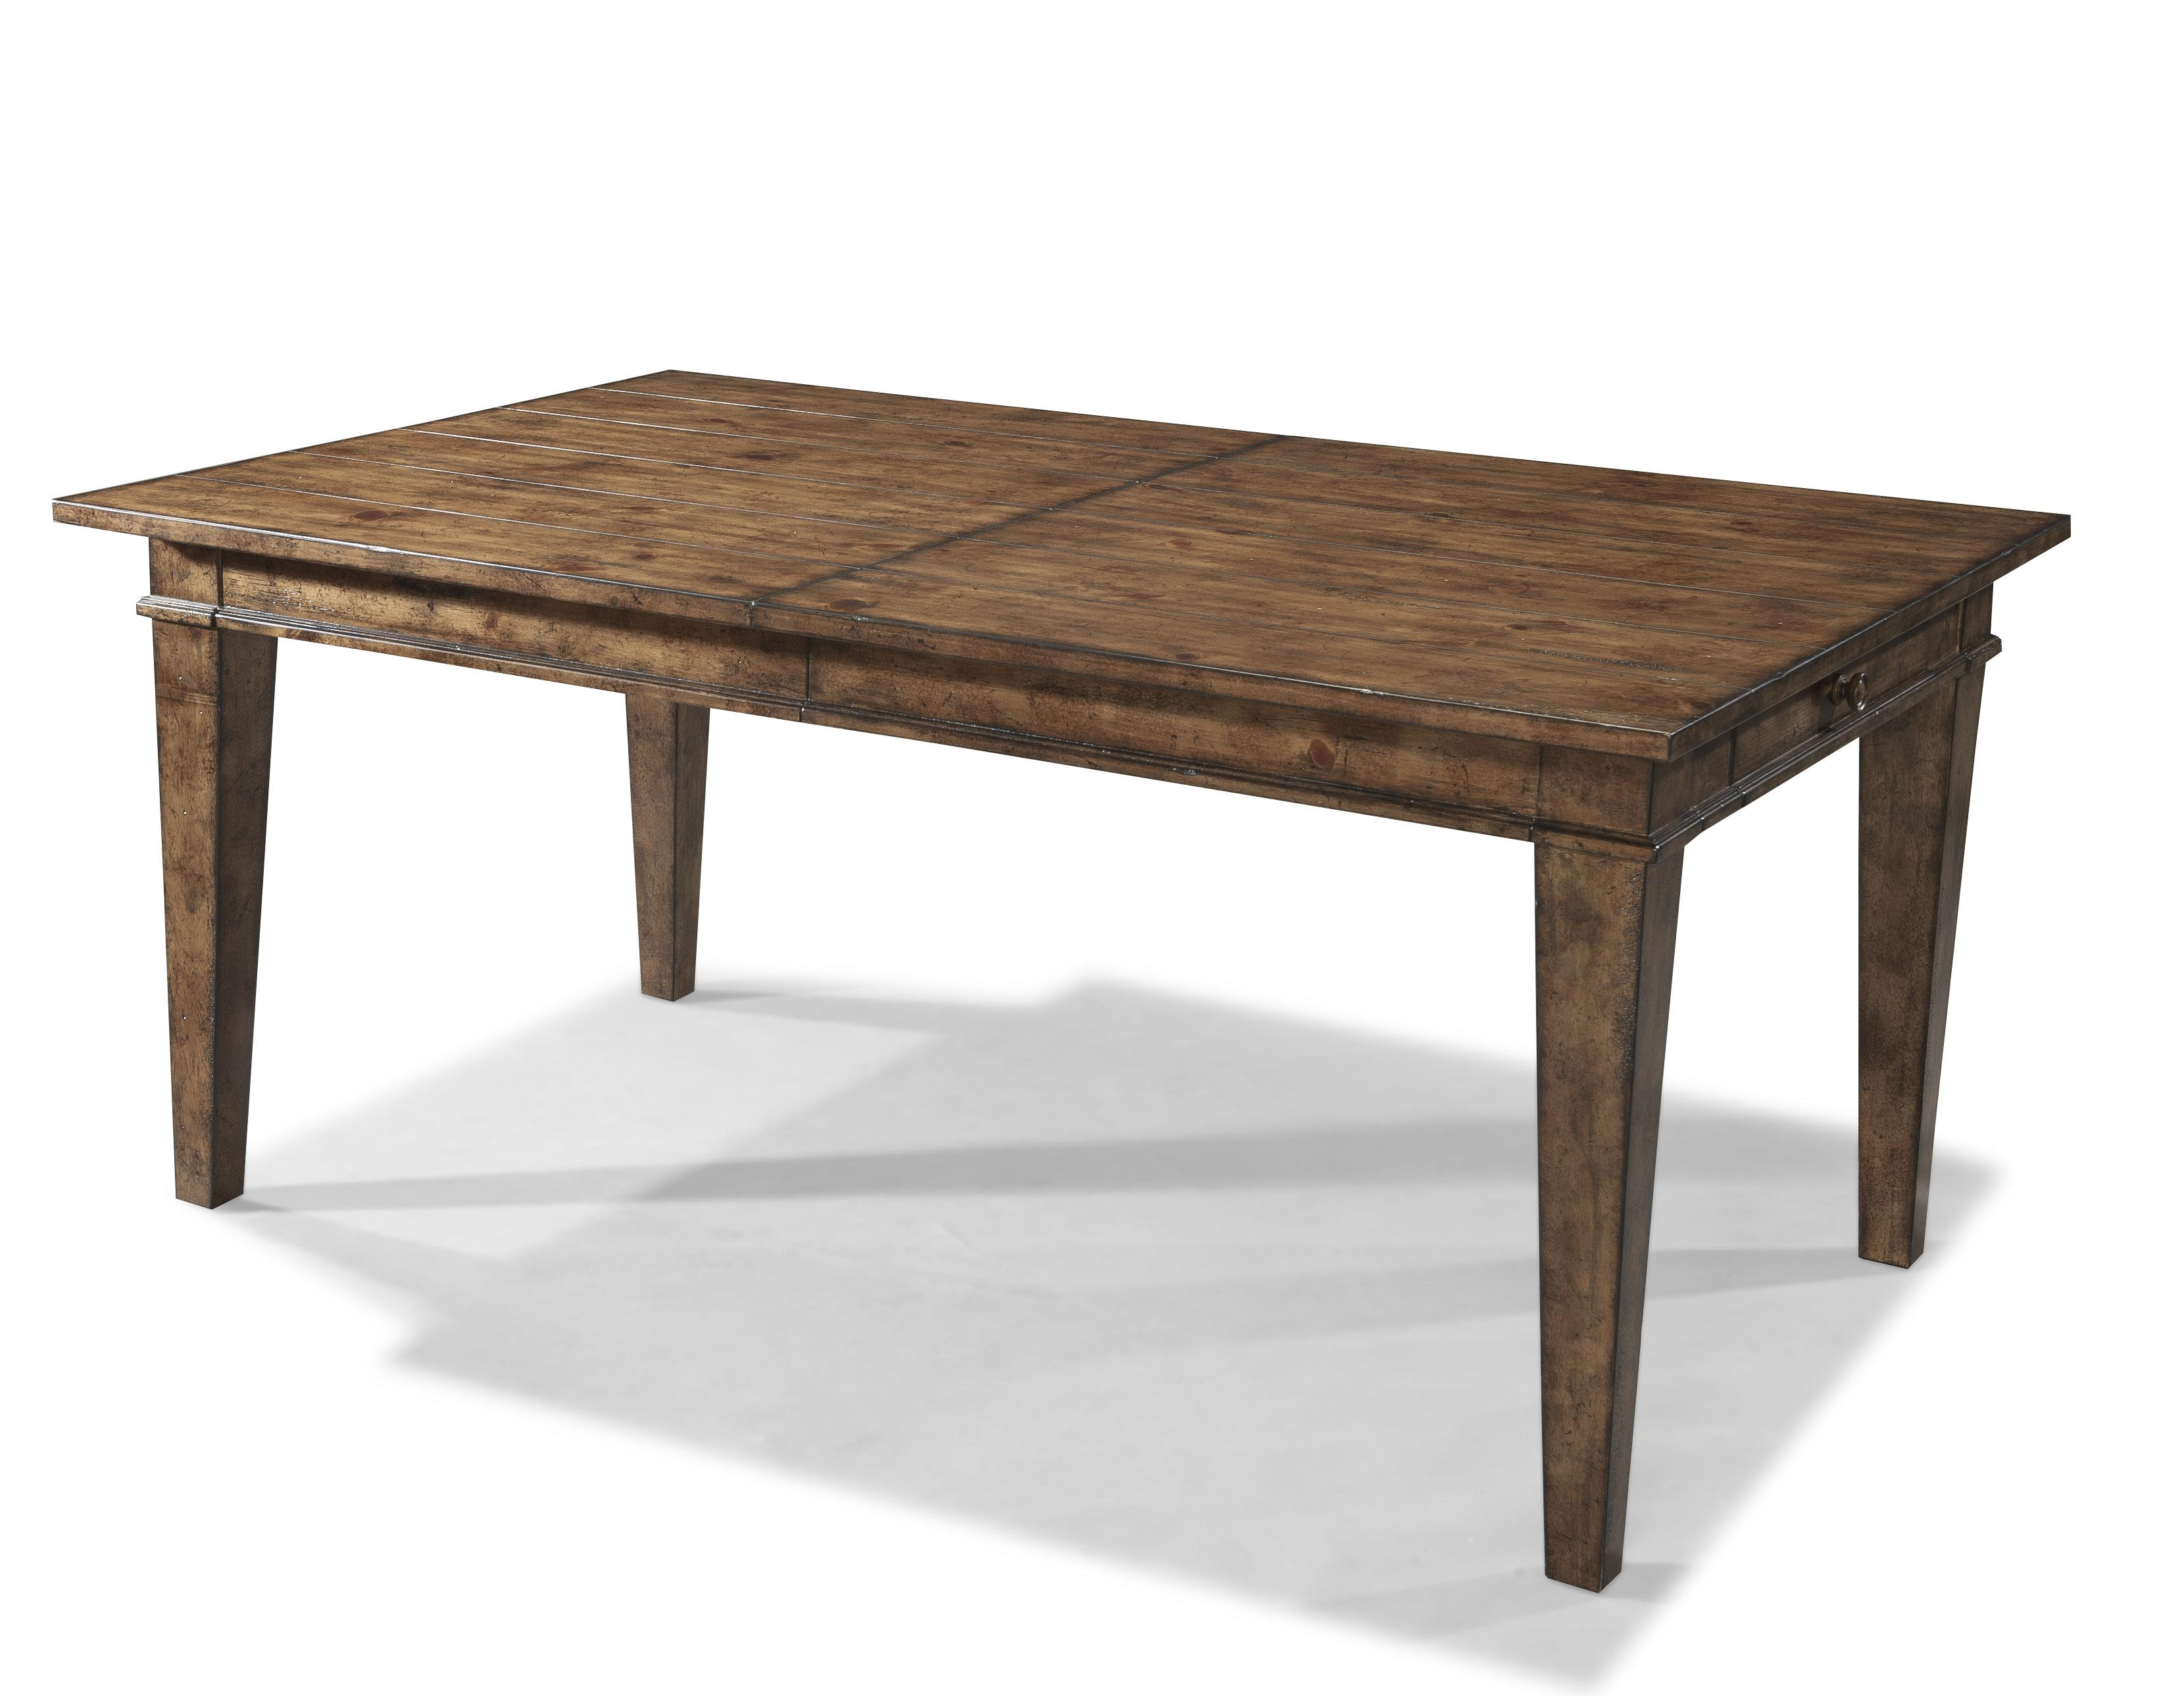 Easton Collection Farmhouse Dining Room Table - Item Number: 436-086 DRT